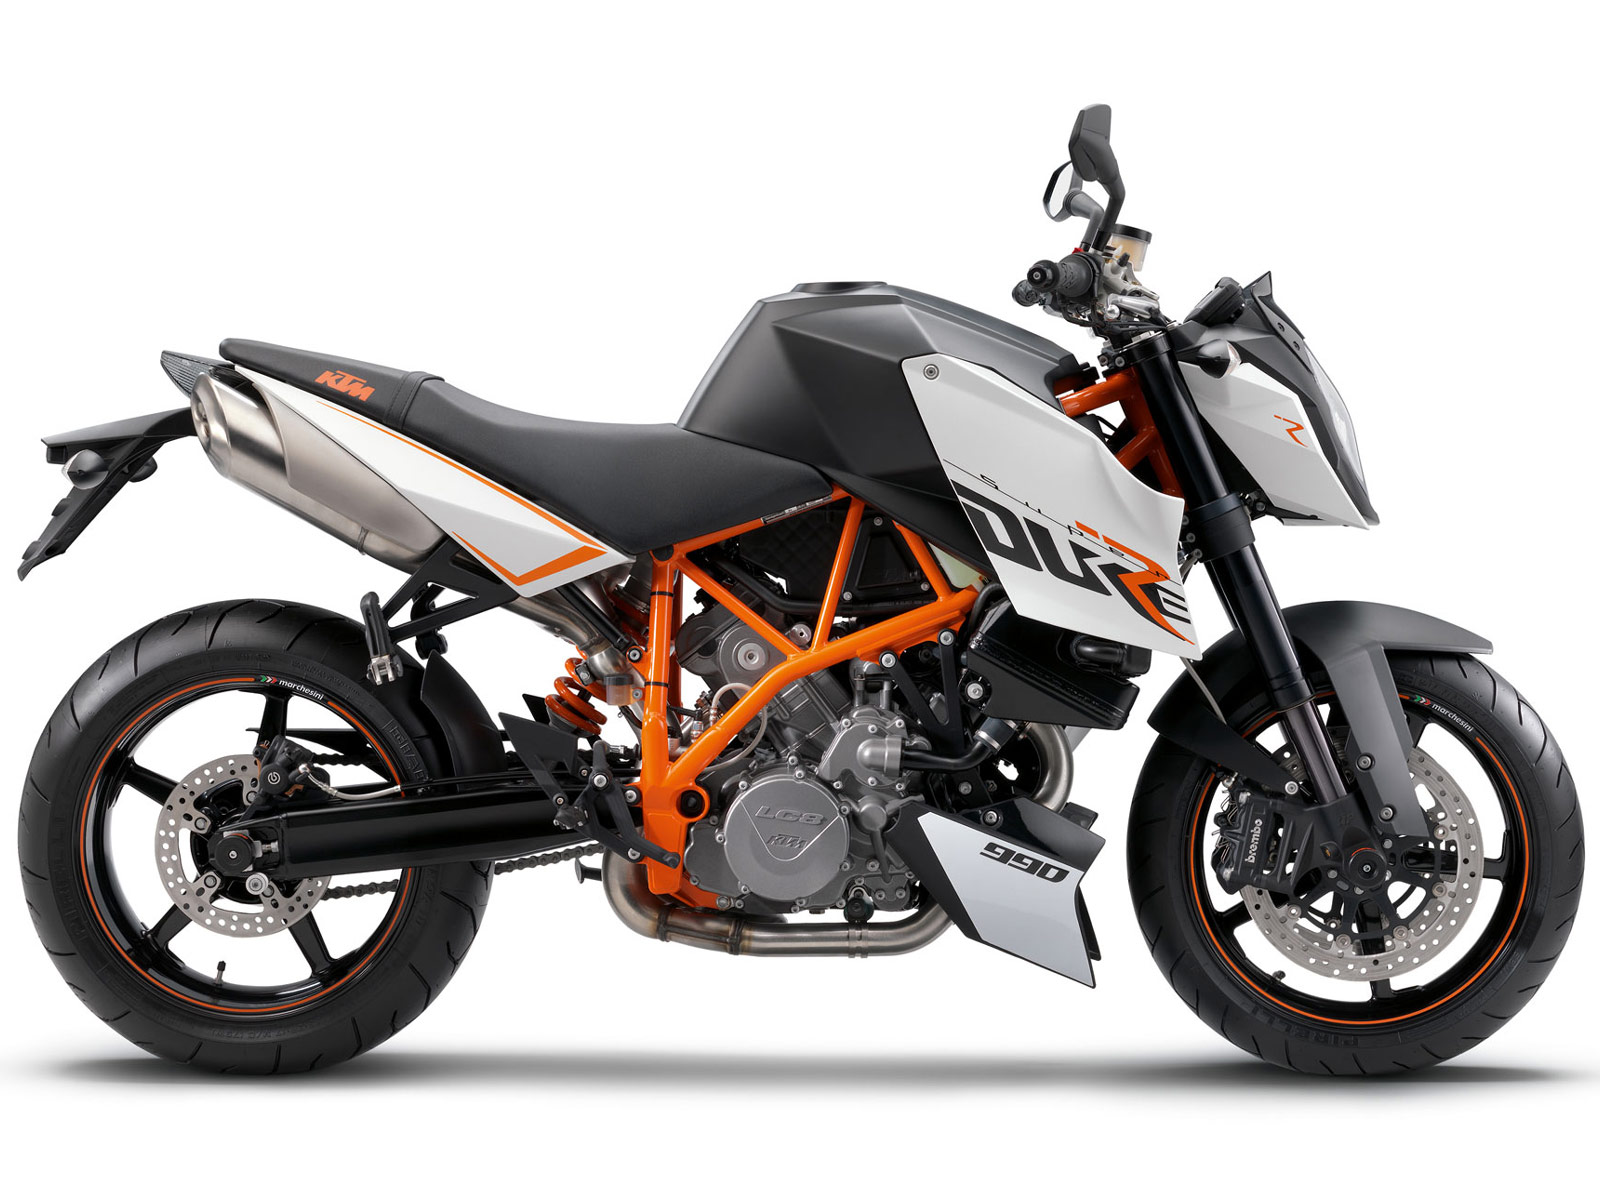 2012 KTM 990 Duke R Motorcycle review specifications wallpapers 1600x1200